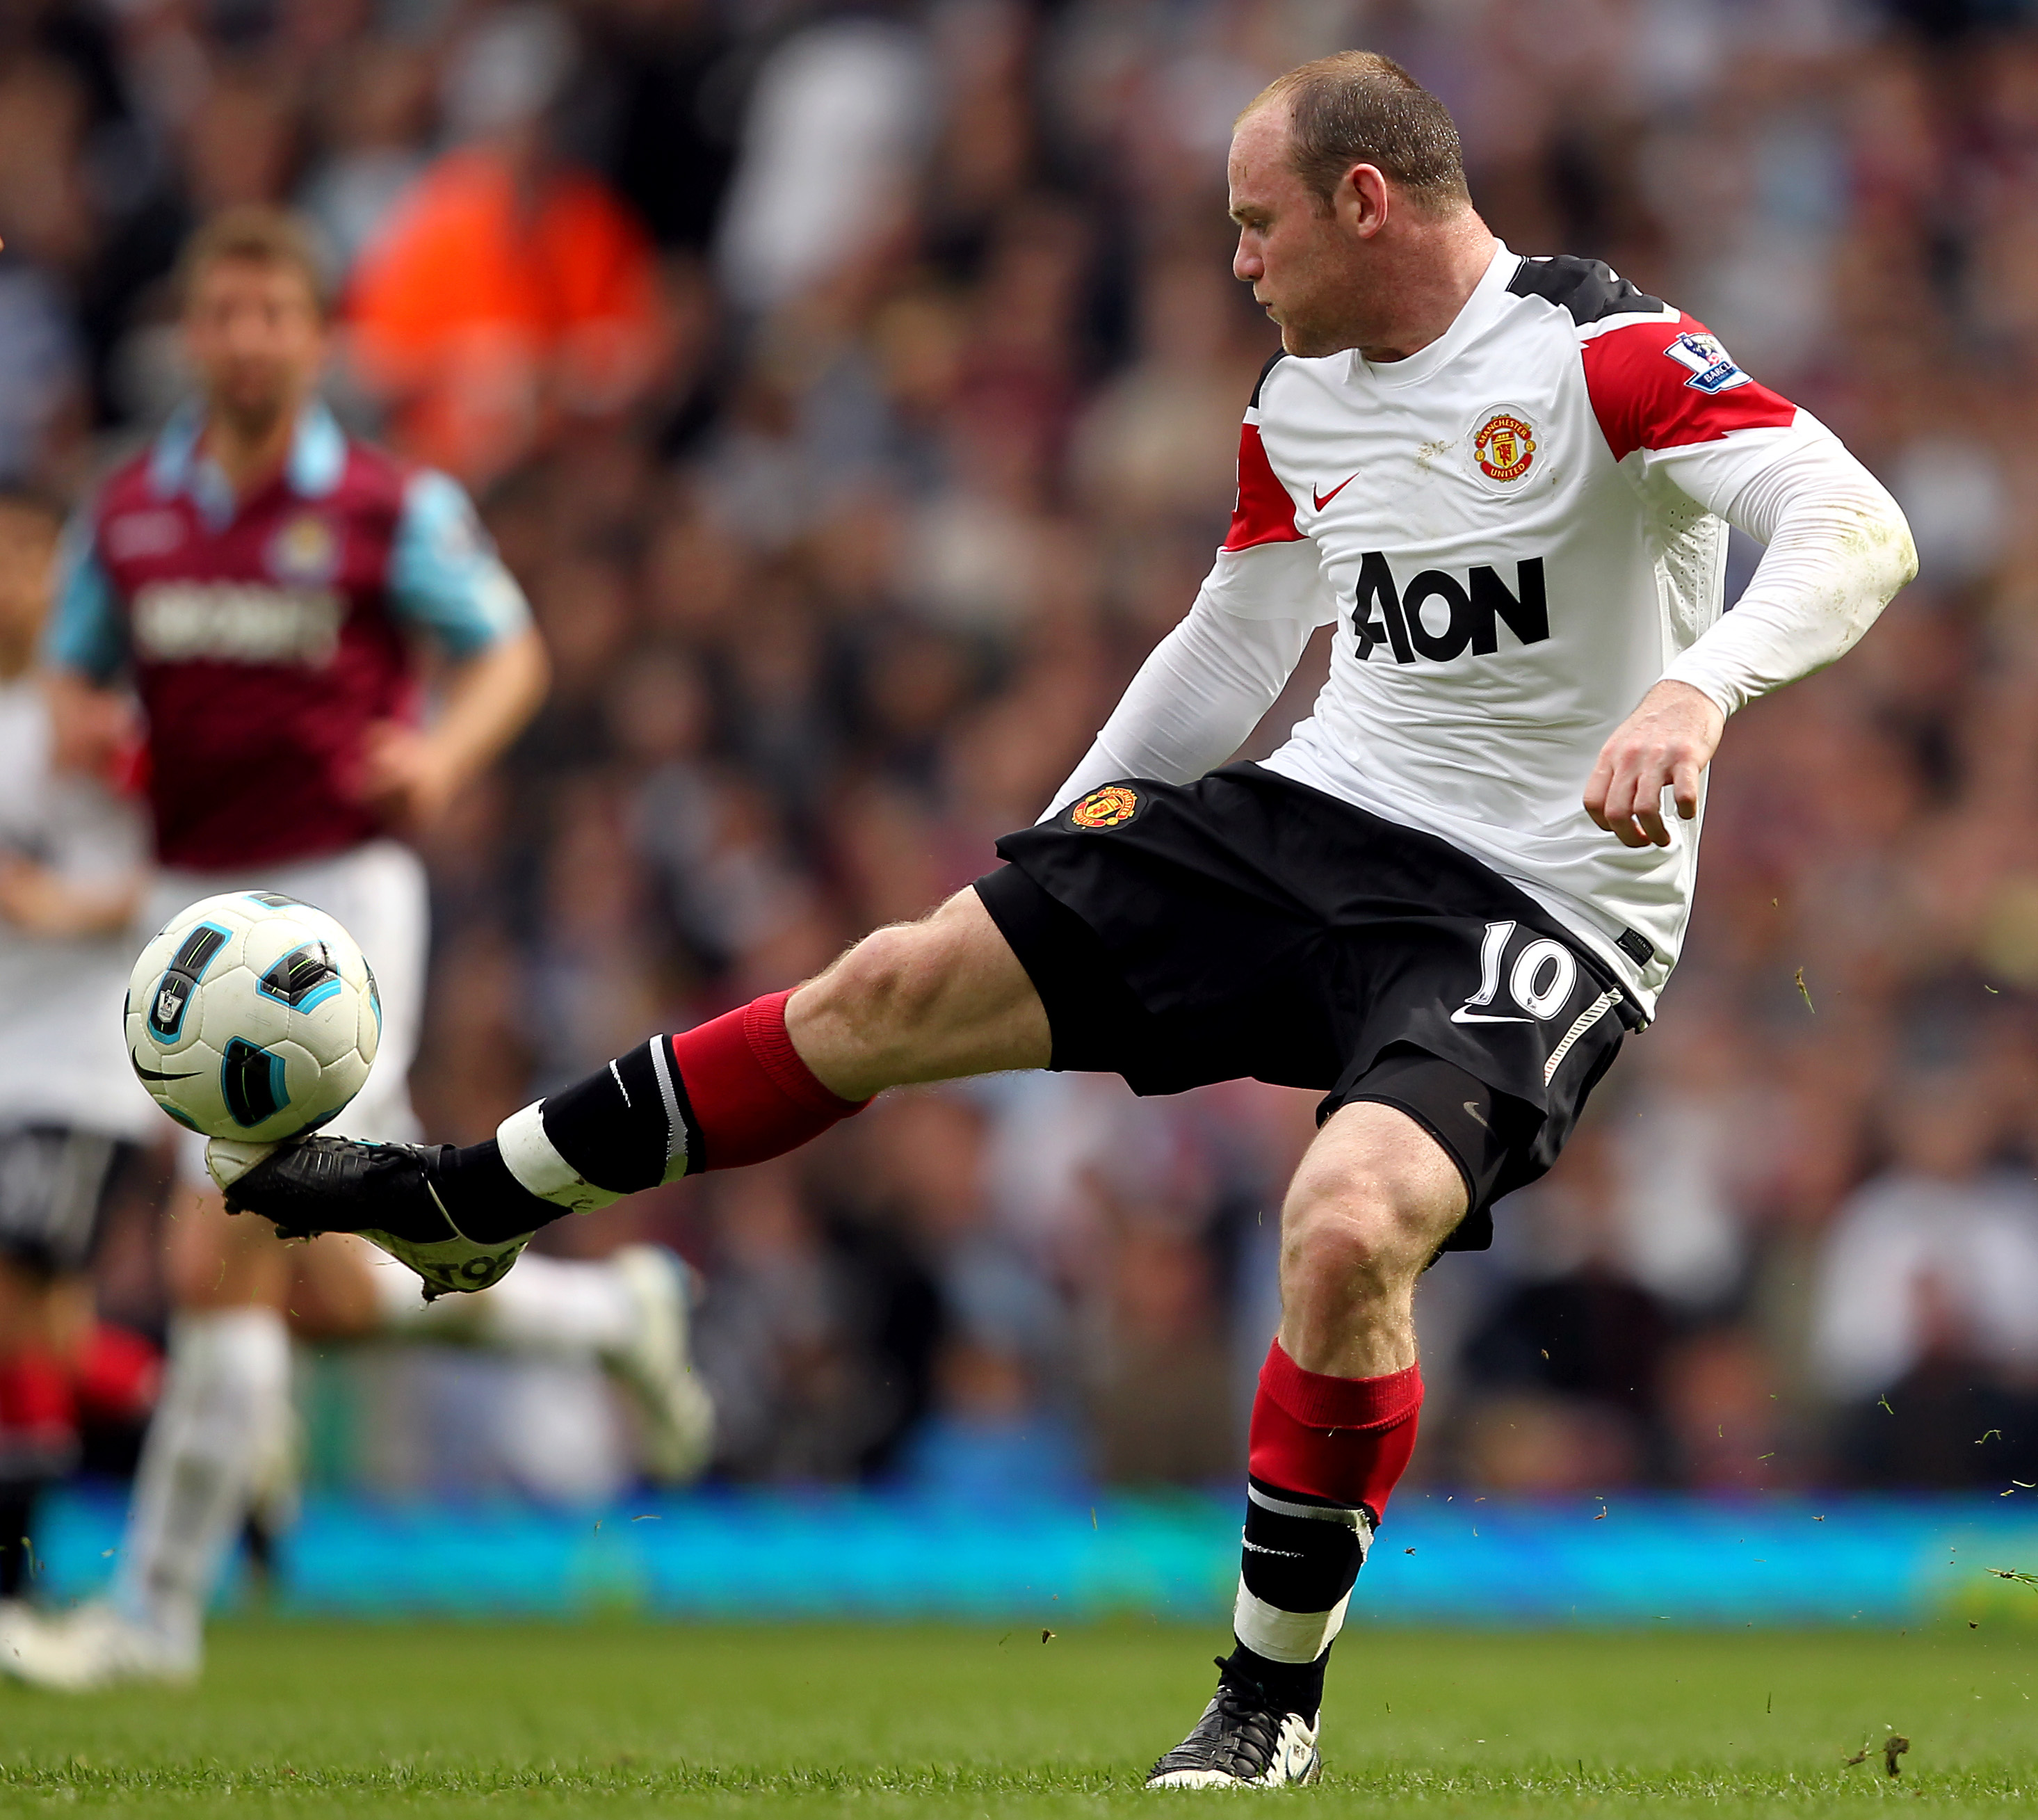 On This Day 2011, Hattrick Rooney Ke Gawang The Hammers